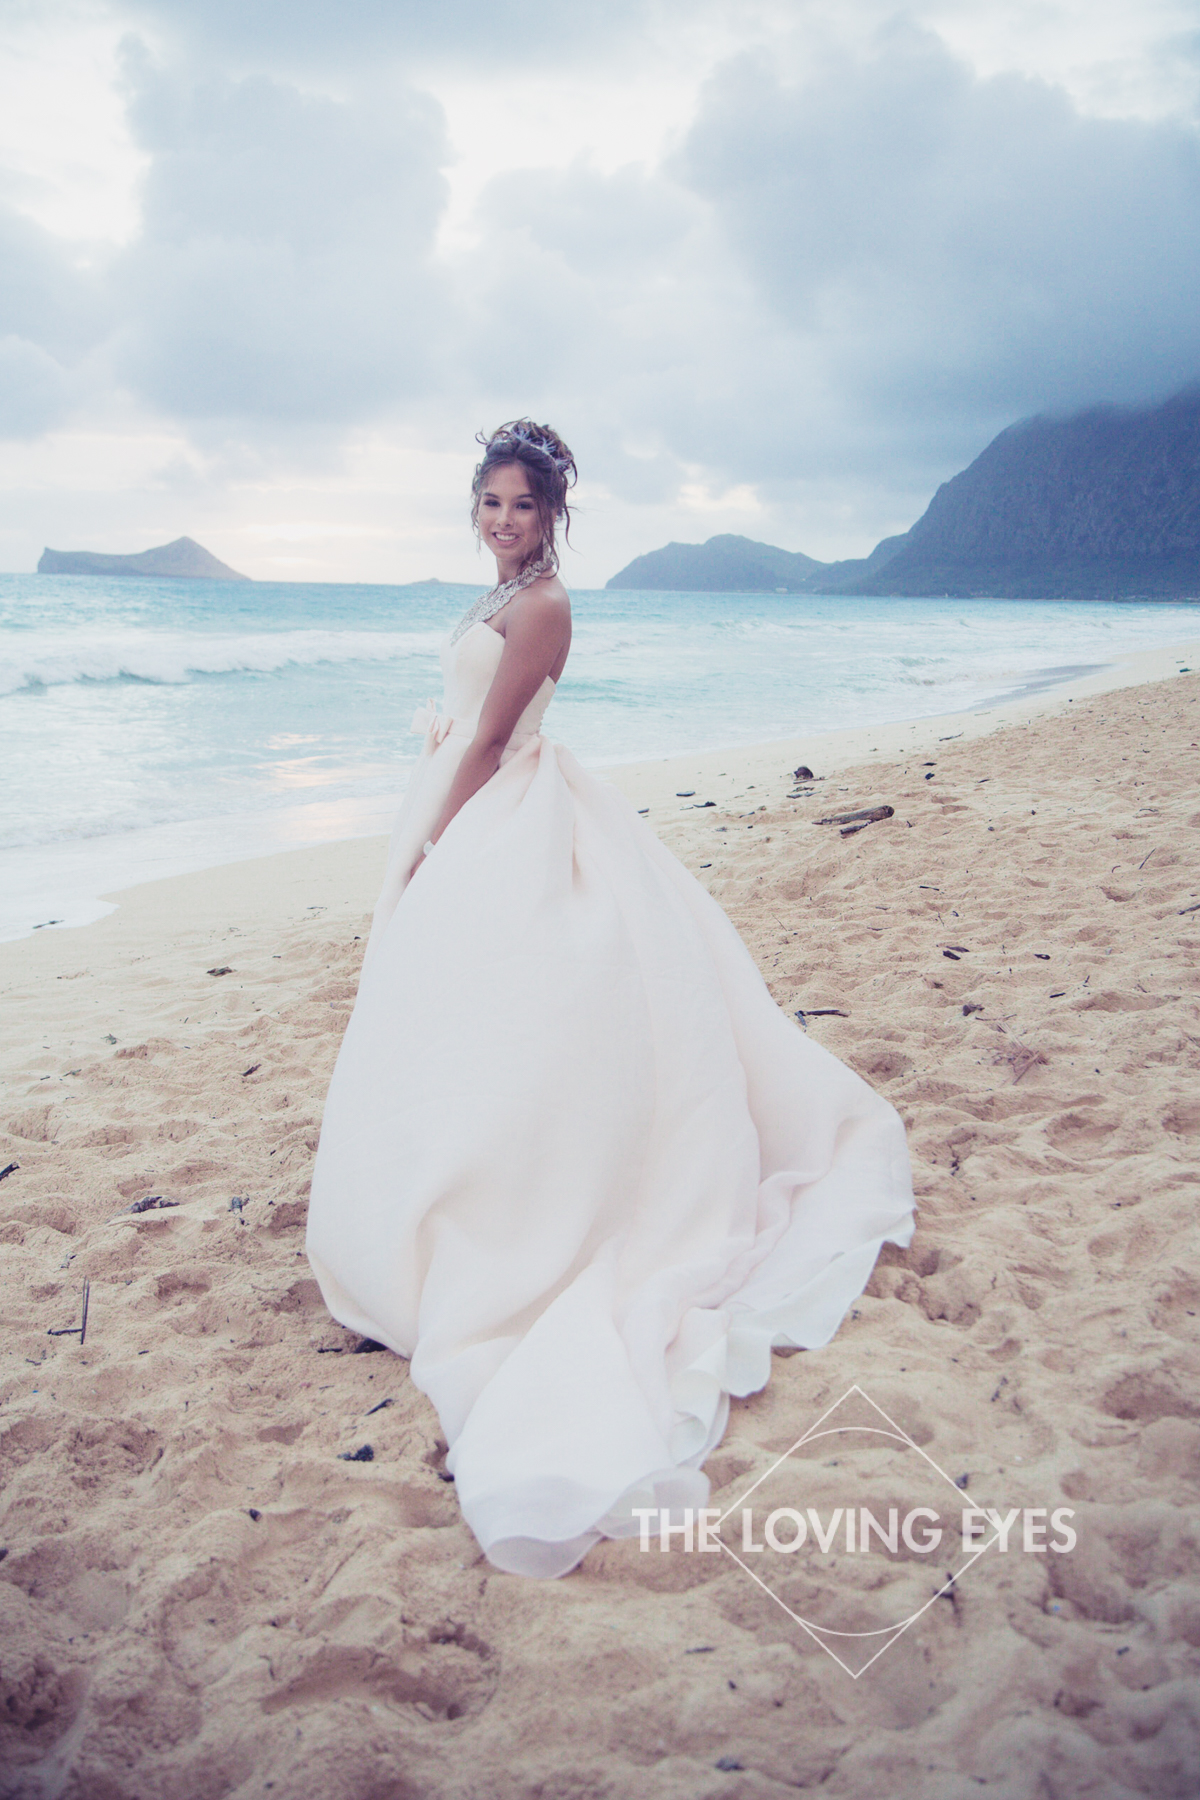 Quincennera photo on the beach in Hawaii